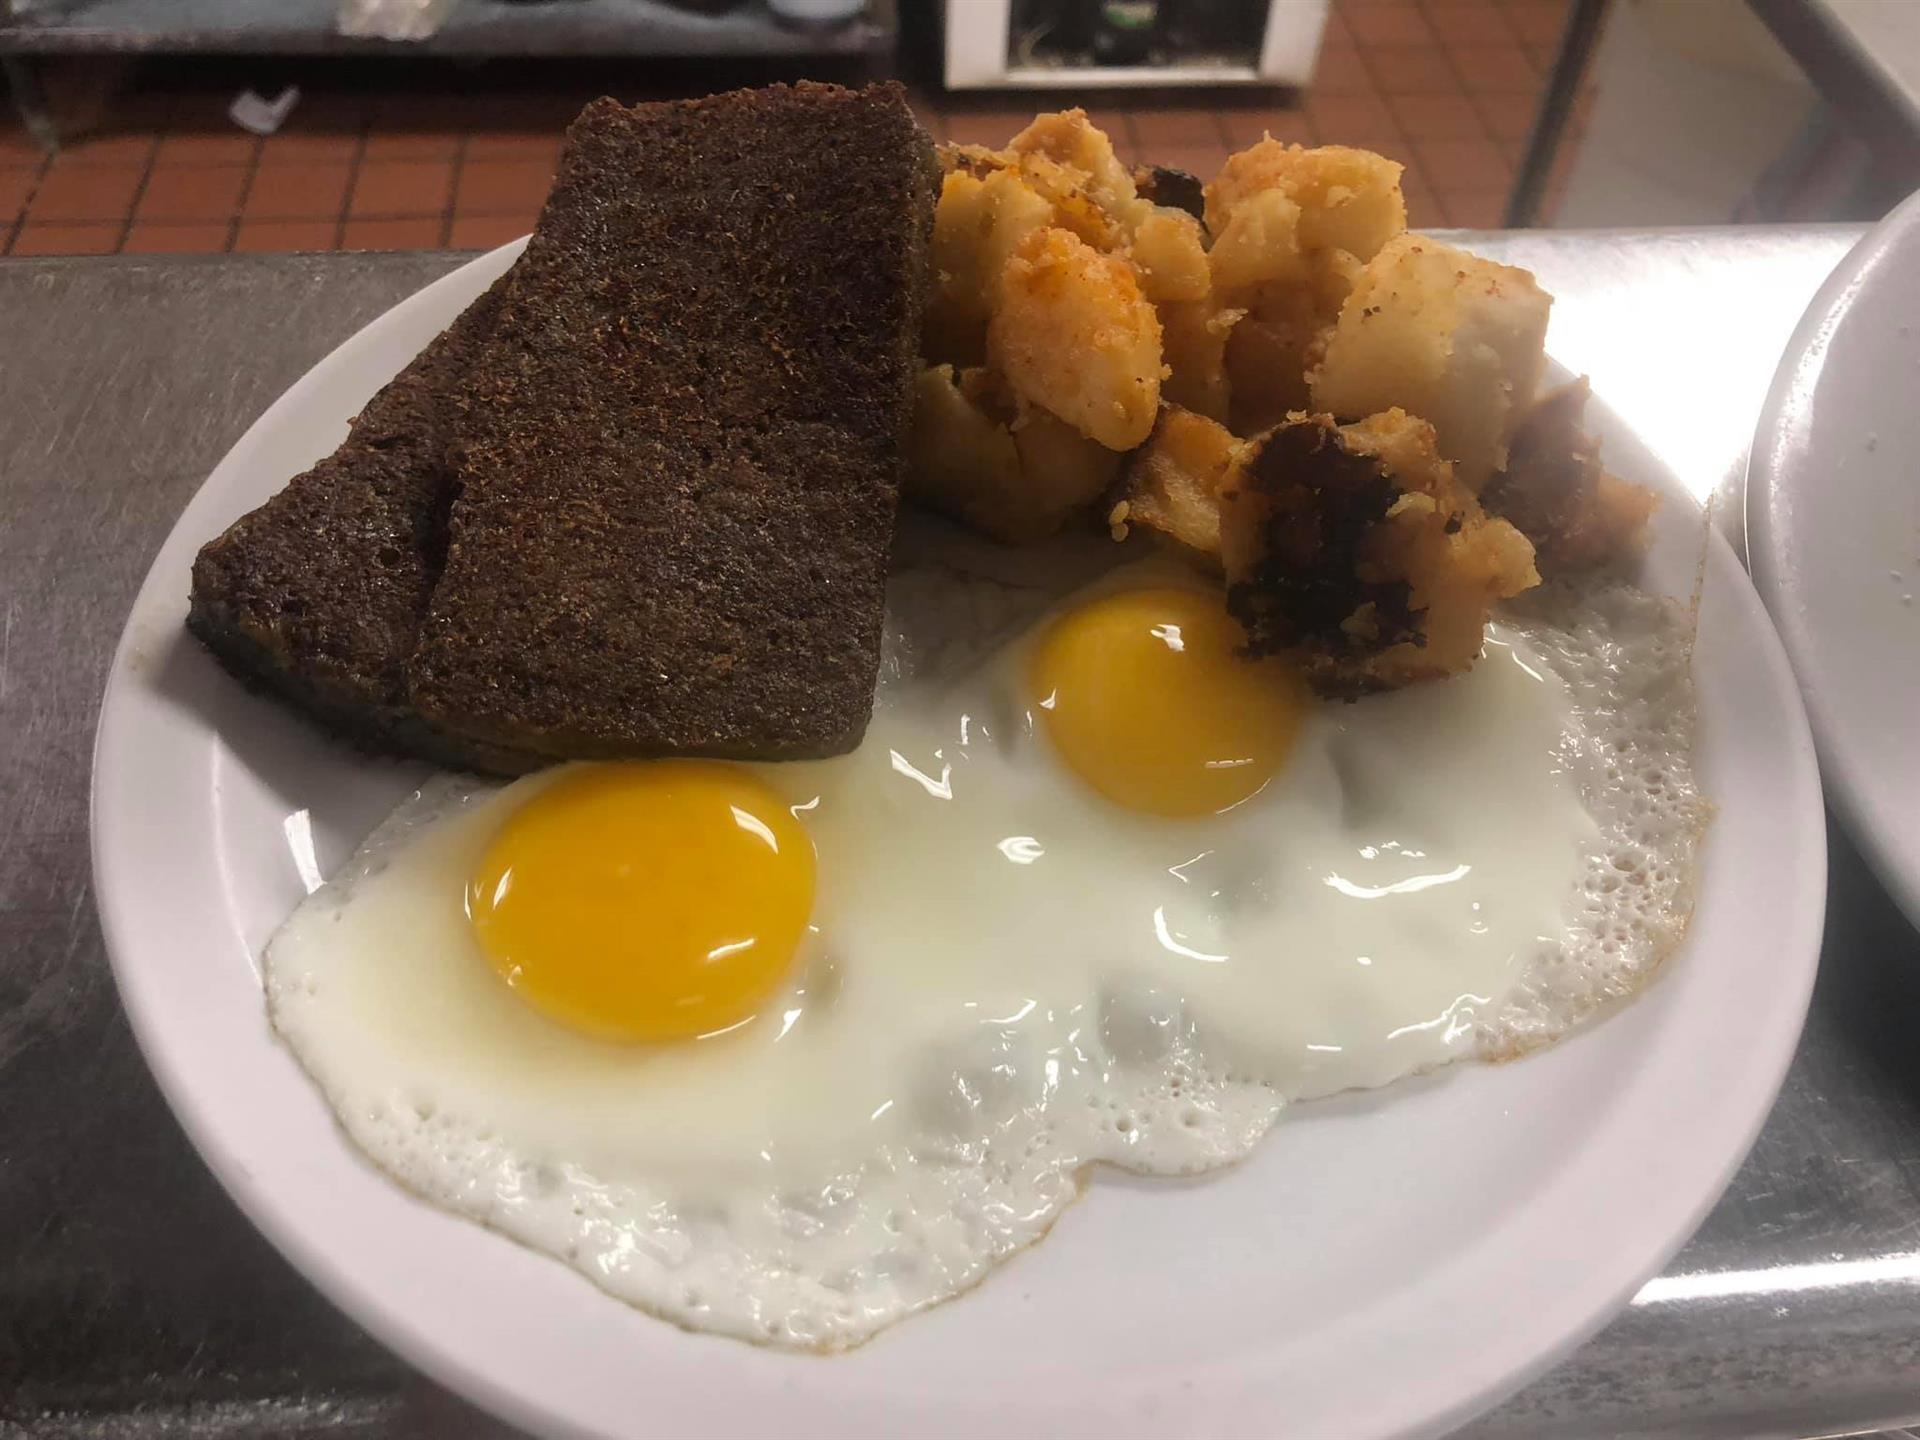 Two fried eggs with breakfast potatoes and sticky bun